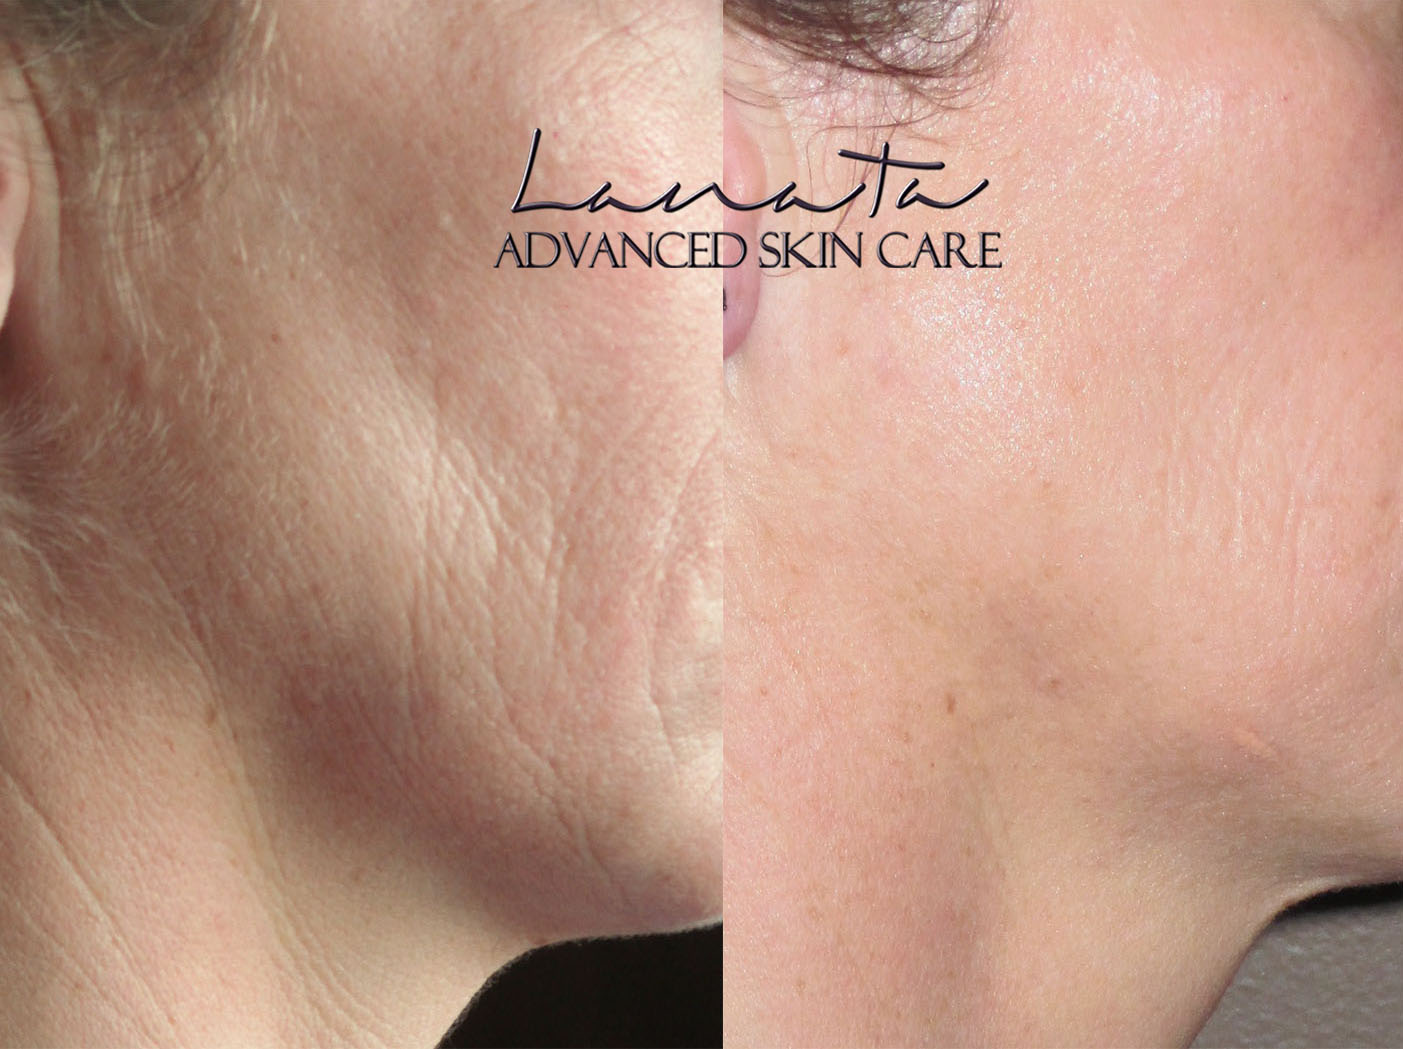 lanata advanced skincare denver microcurrent before after 7